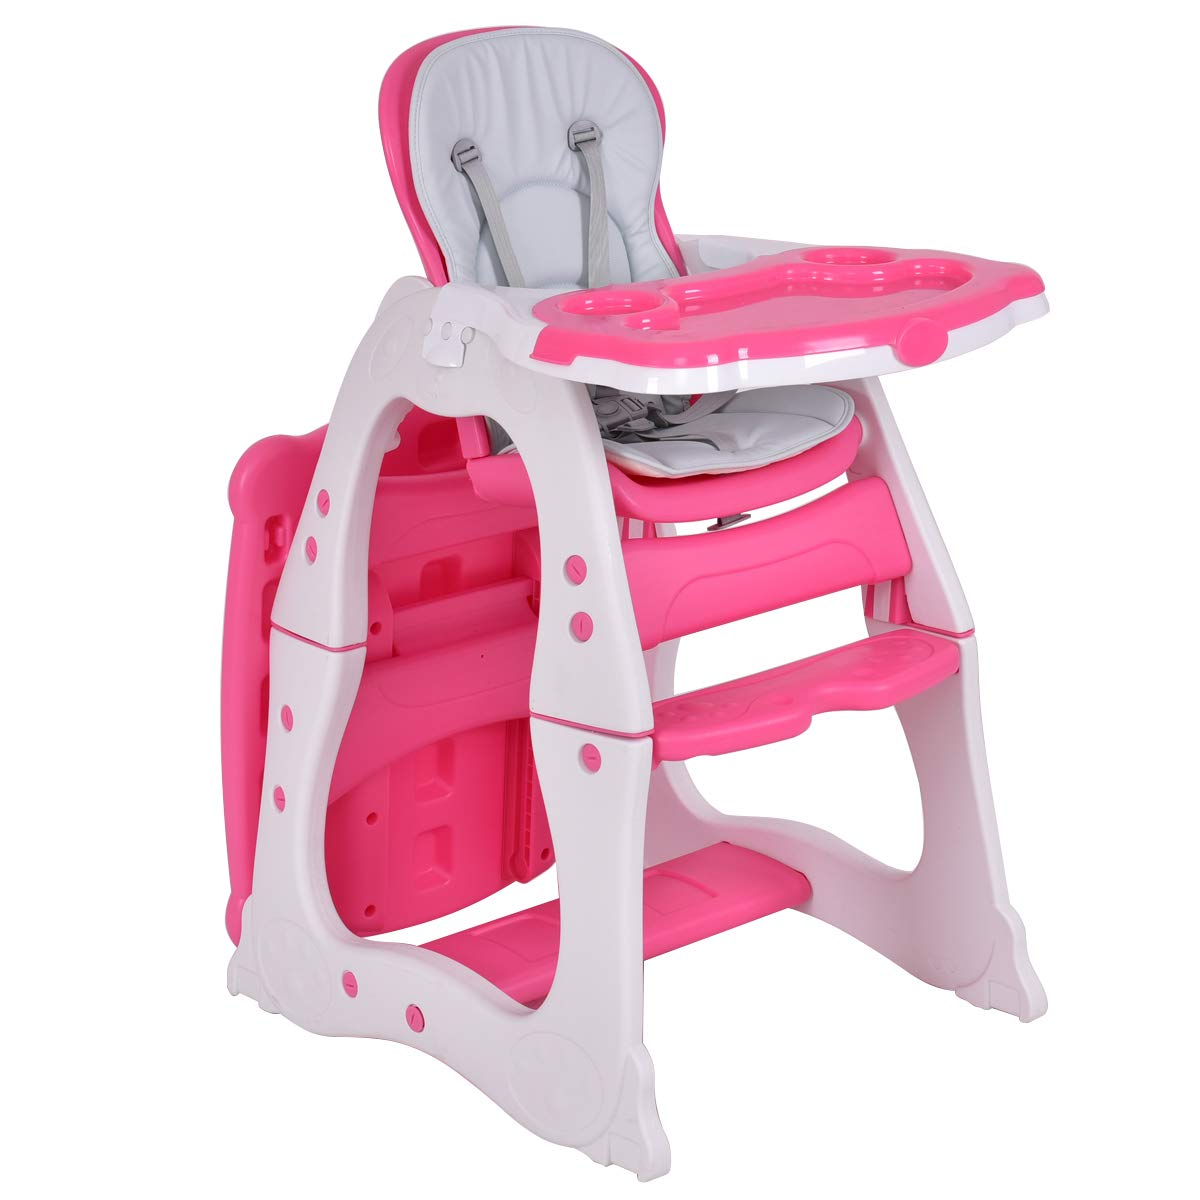 Costzon 3 in 1 Baby High Chair Desk Convertible Play Table Conversion Seat Booster (Pink)